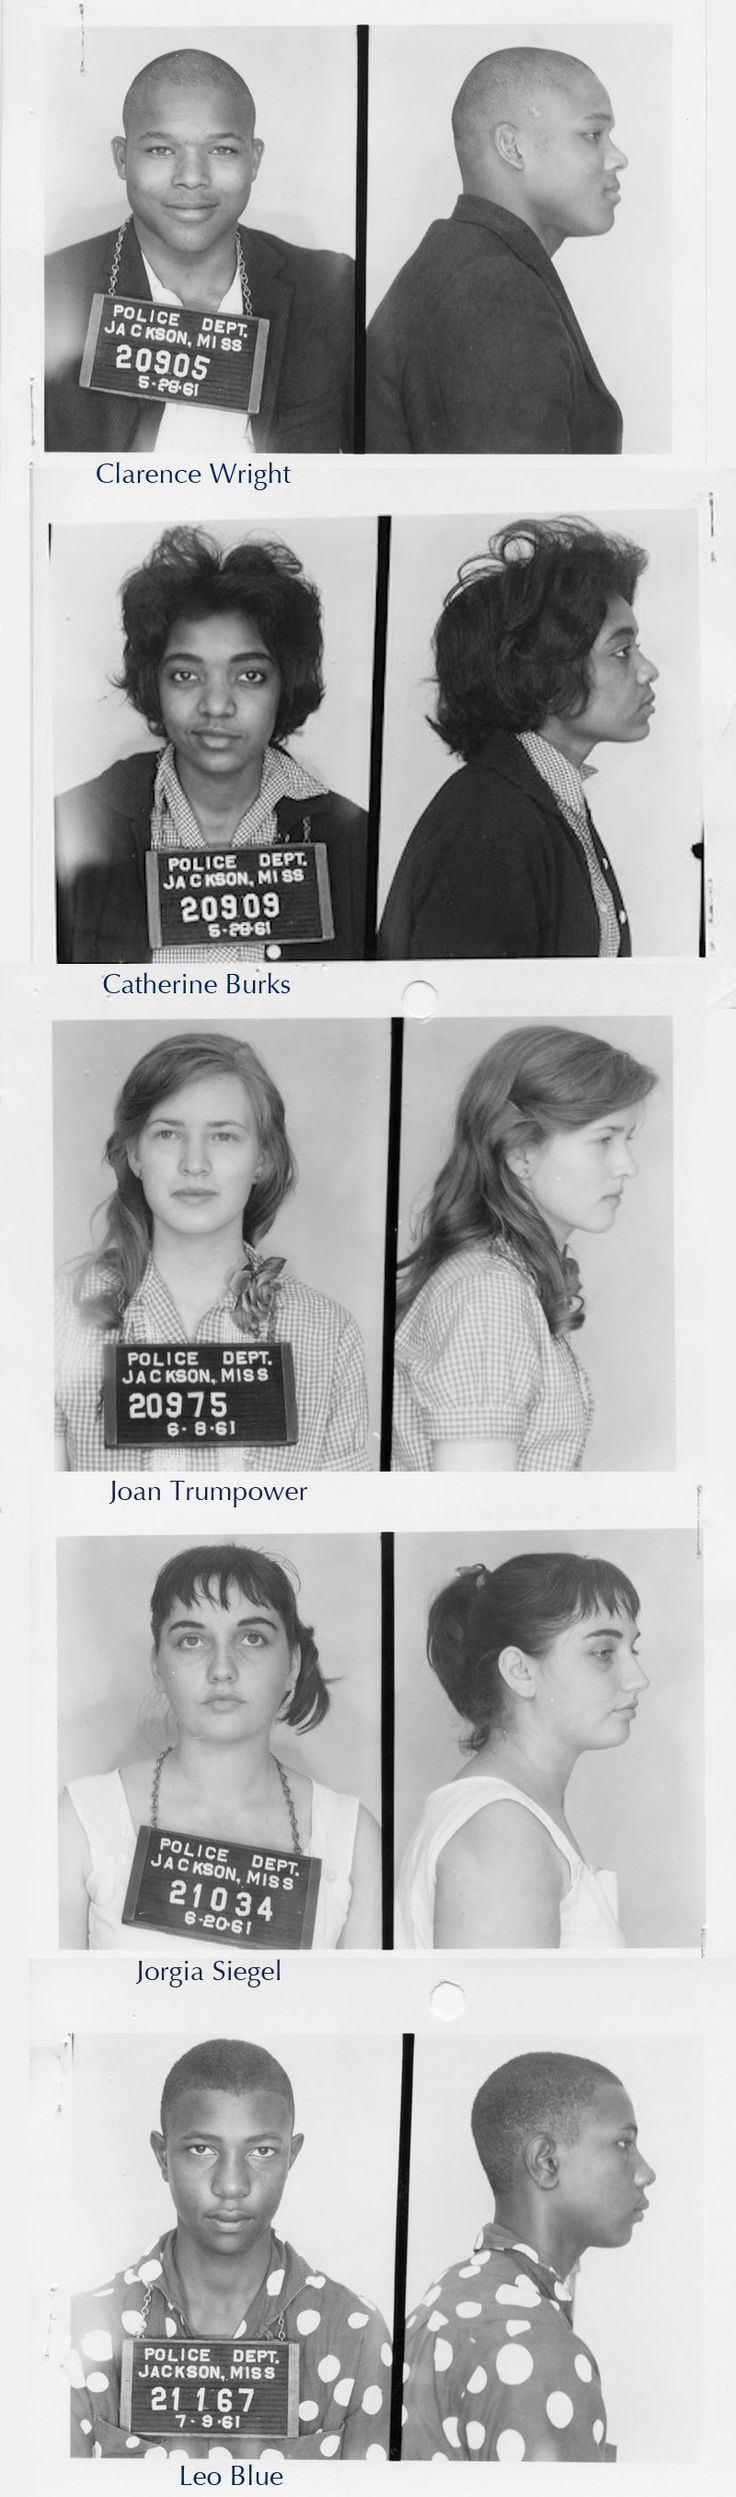 Mugshots of Freedom Riders, Jackson Mississippi, 1961. I love their faces and the range of emotions. All the tiny and not so tiny smiles, as if they know something. I wonder if they knew they'd win.